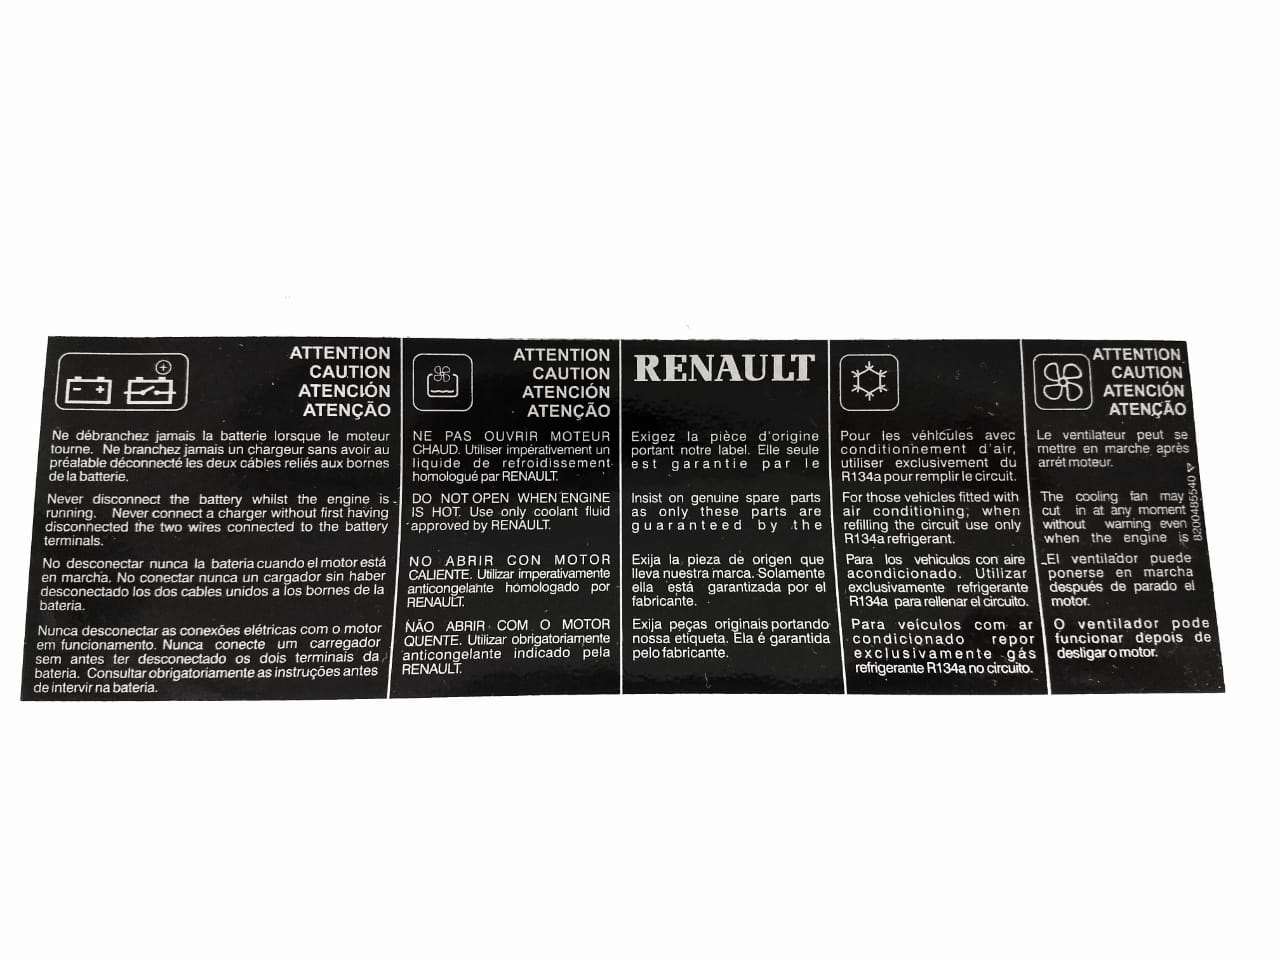 Etiqueta do painel frontal - Emblemas - PC - Renault Scen